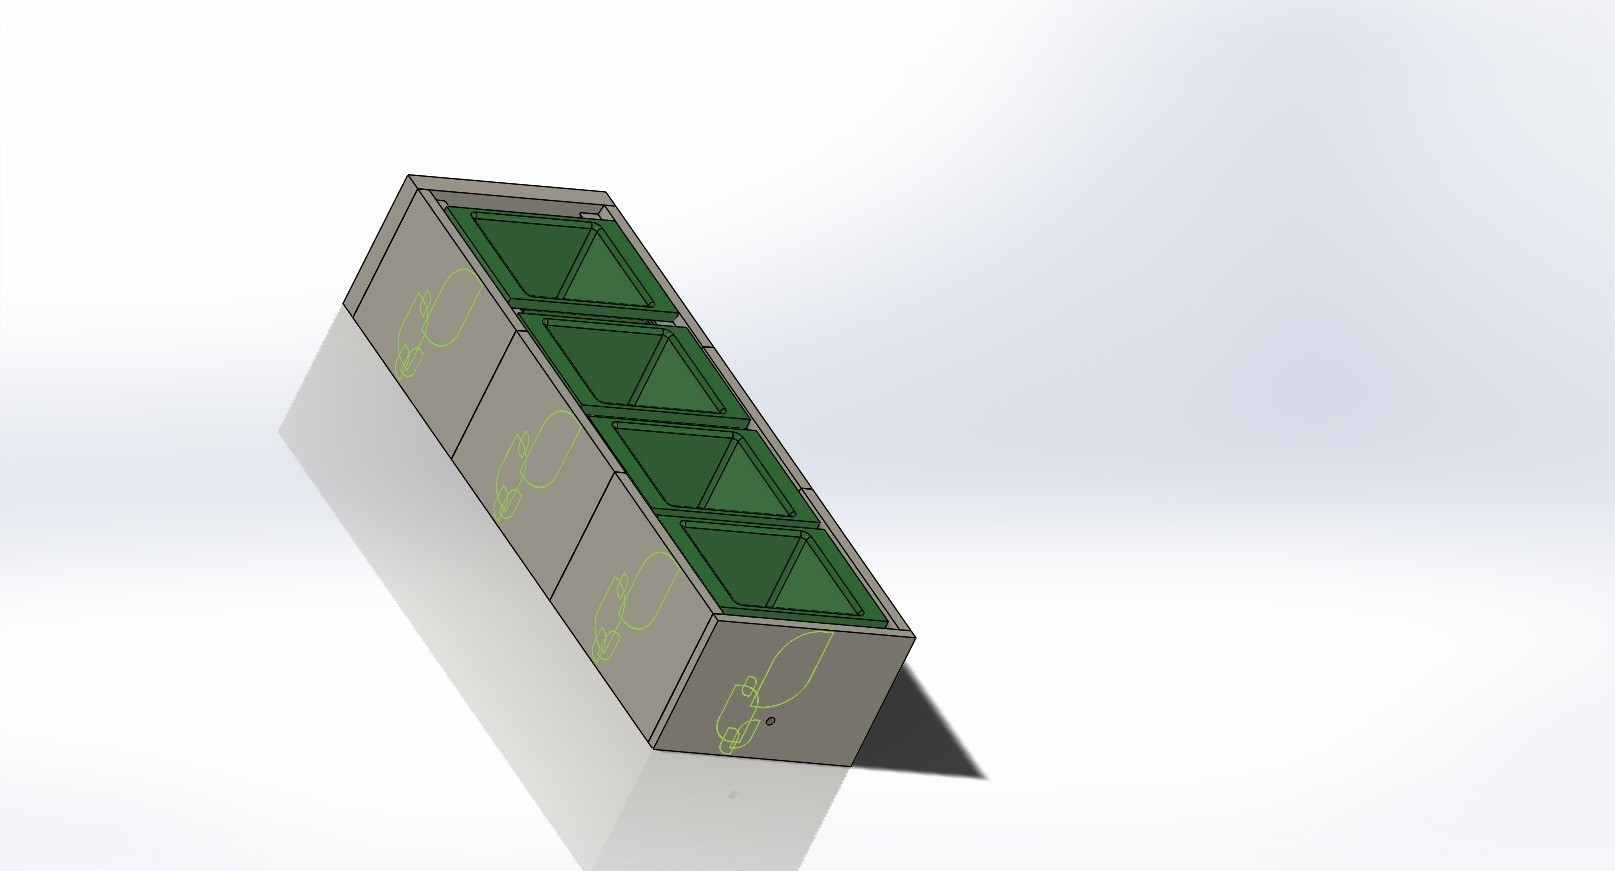 modular plant pot holder recycling assembly 2.JPG Download free STL file Modular Plant Holding System with Water recycling • 3D print model, AAMS